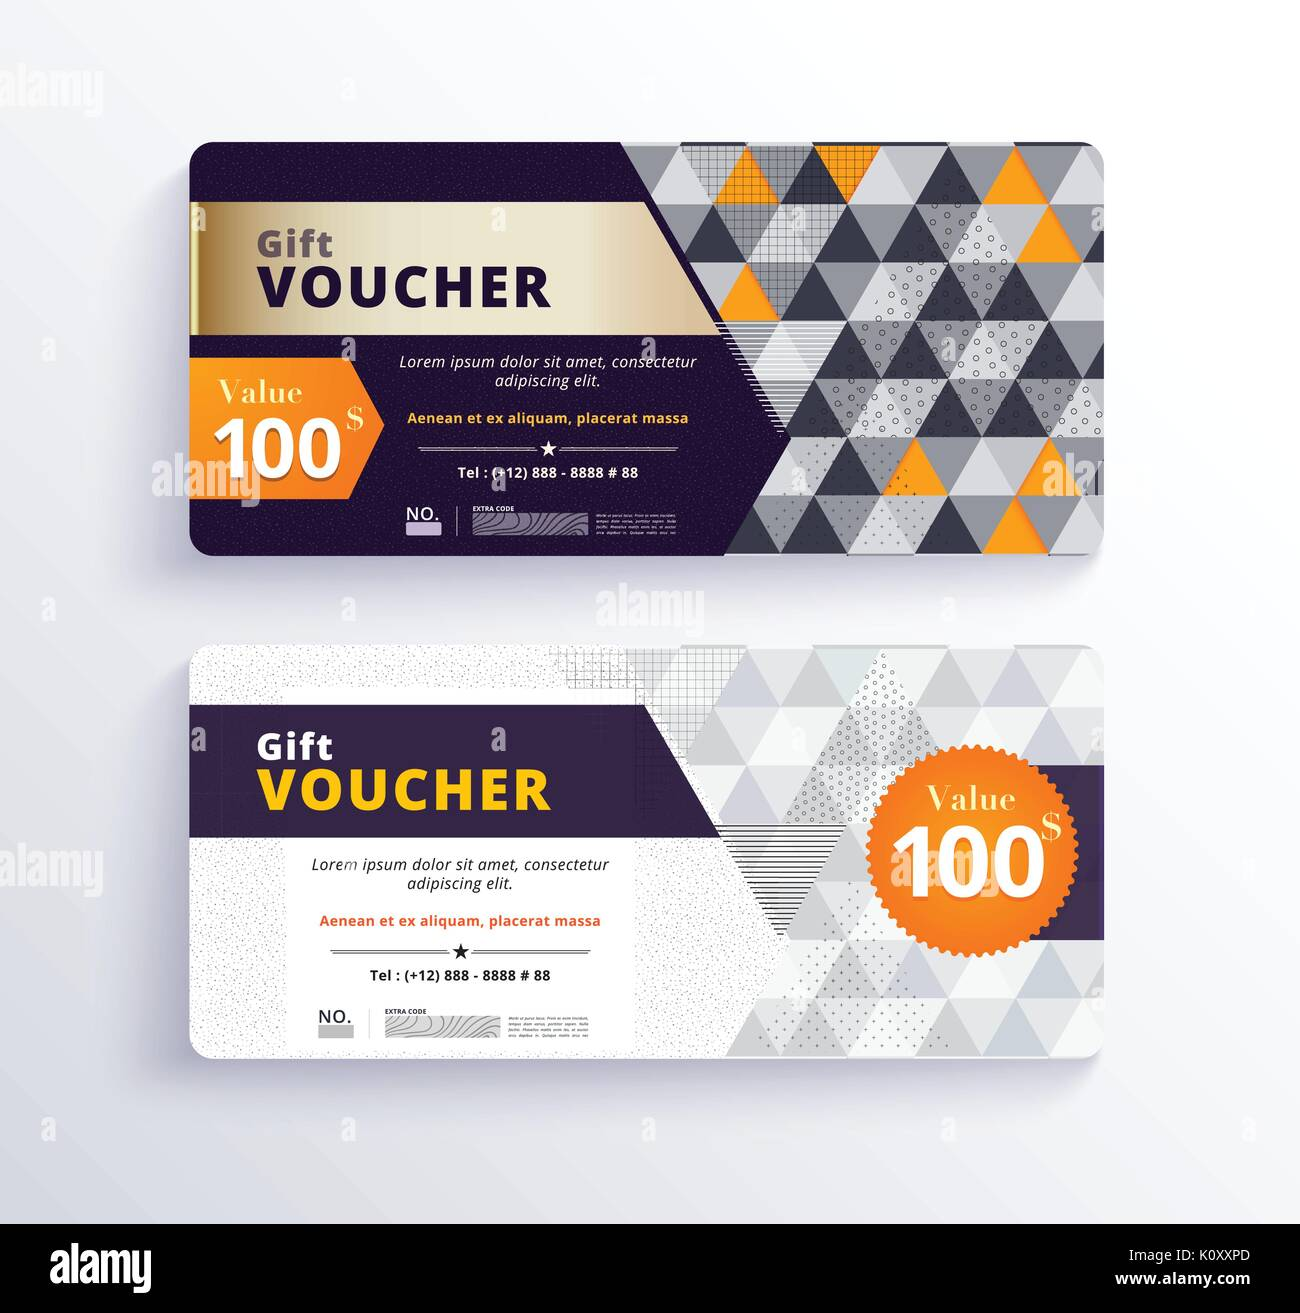 Business gift voucher template design with geometric concept white business gift voucher template design with geometric concept white and gold color vector illustration colourmoves